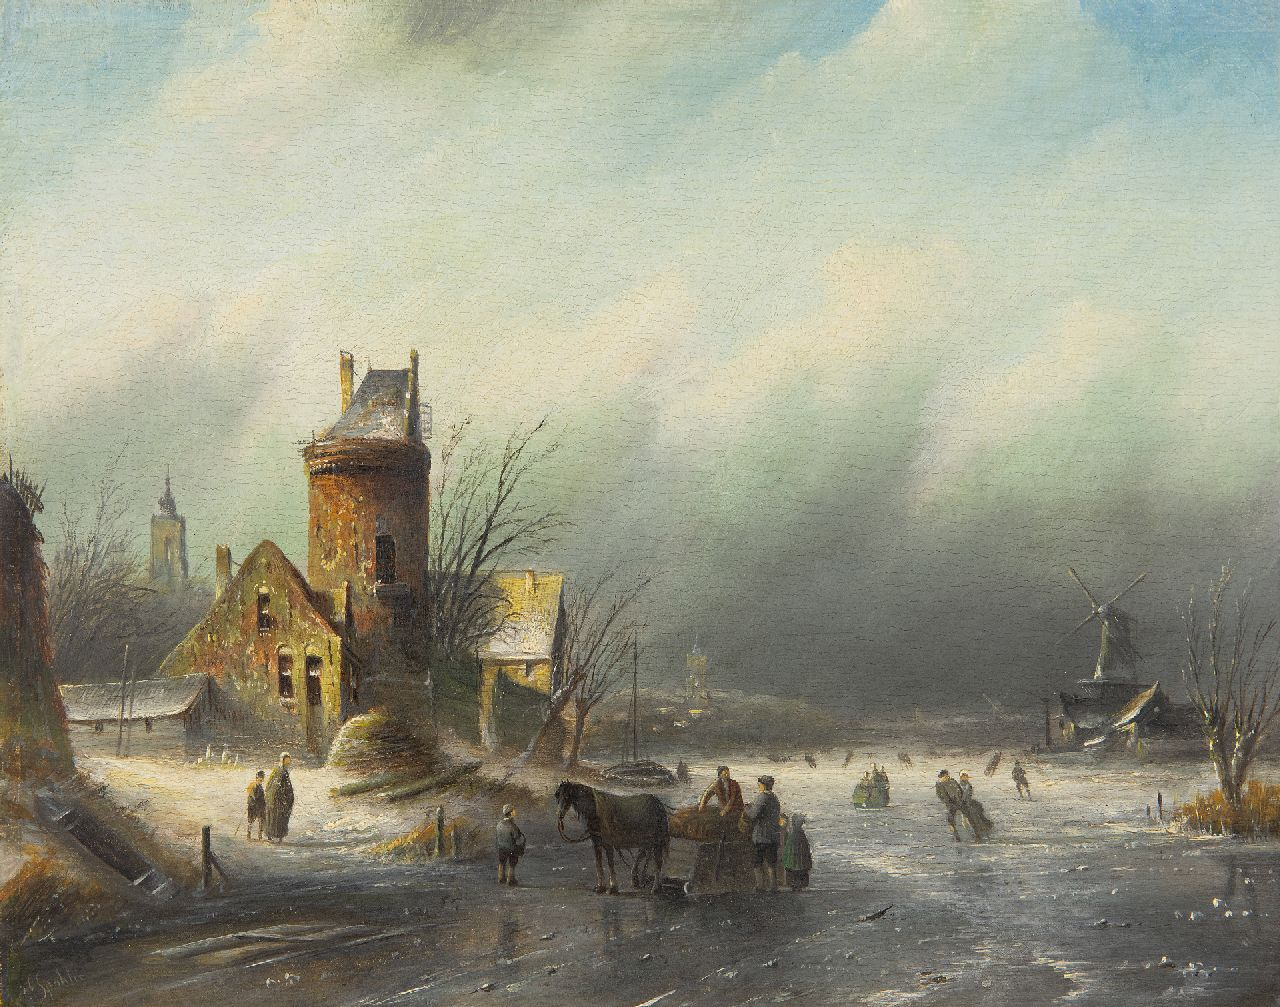 Jacob Jan Coenraad Spohler | A winter landscape with skaters on a frozen river, oil on panel, 21.5 x 27.1 cm, signed l.l.